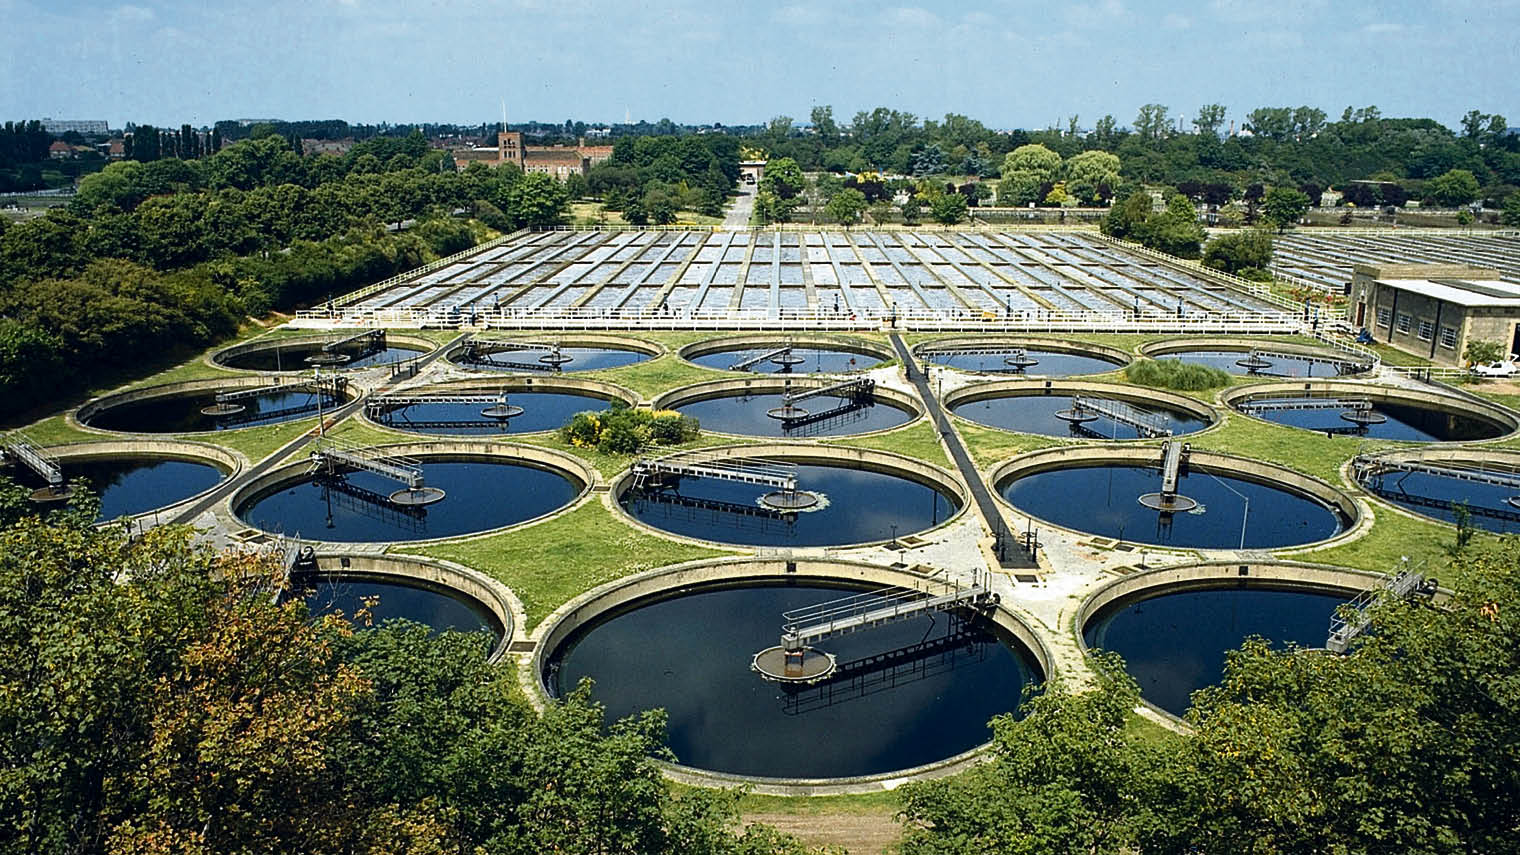 Wastewater cleaning facilities